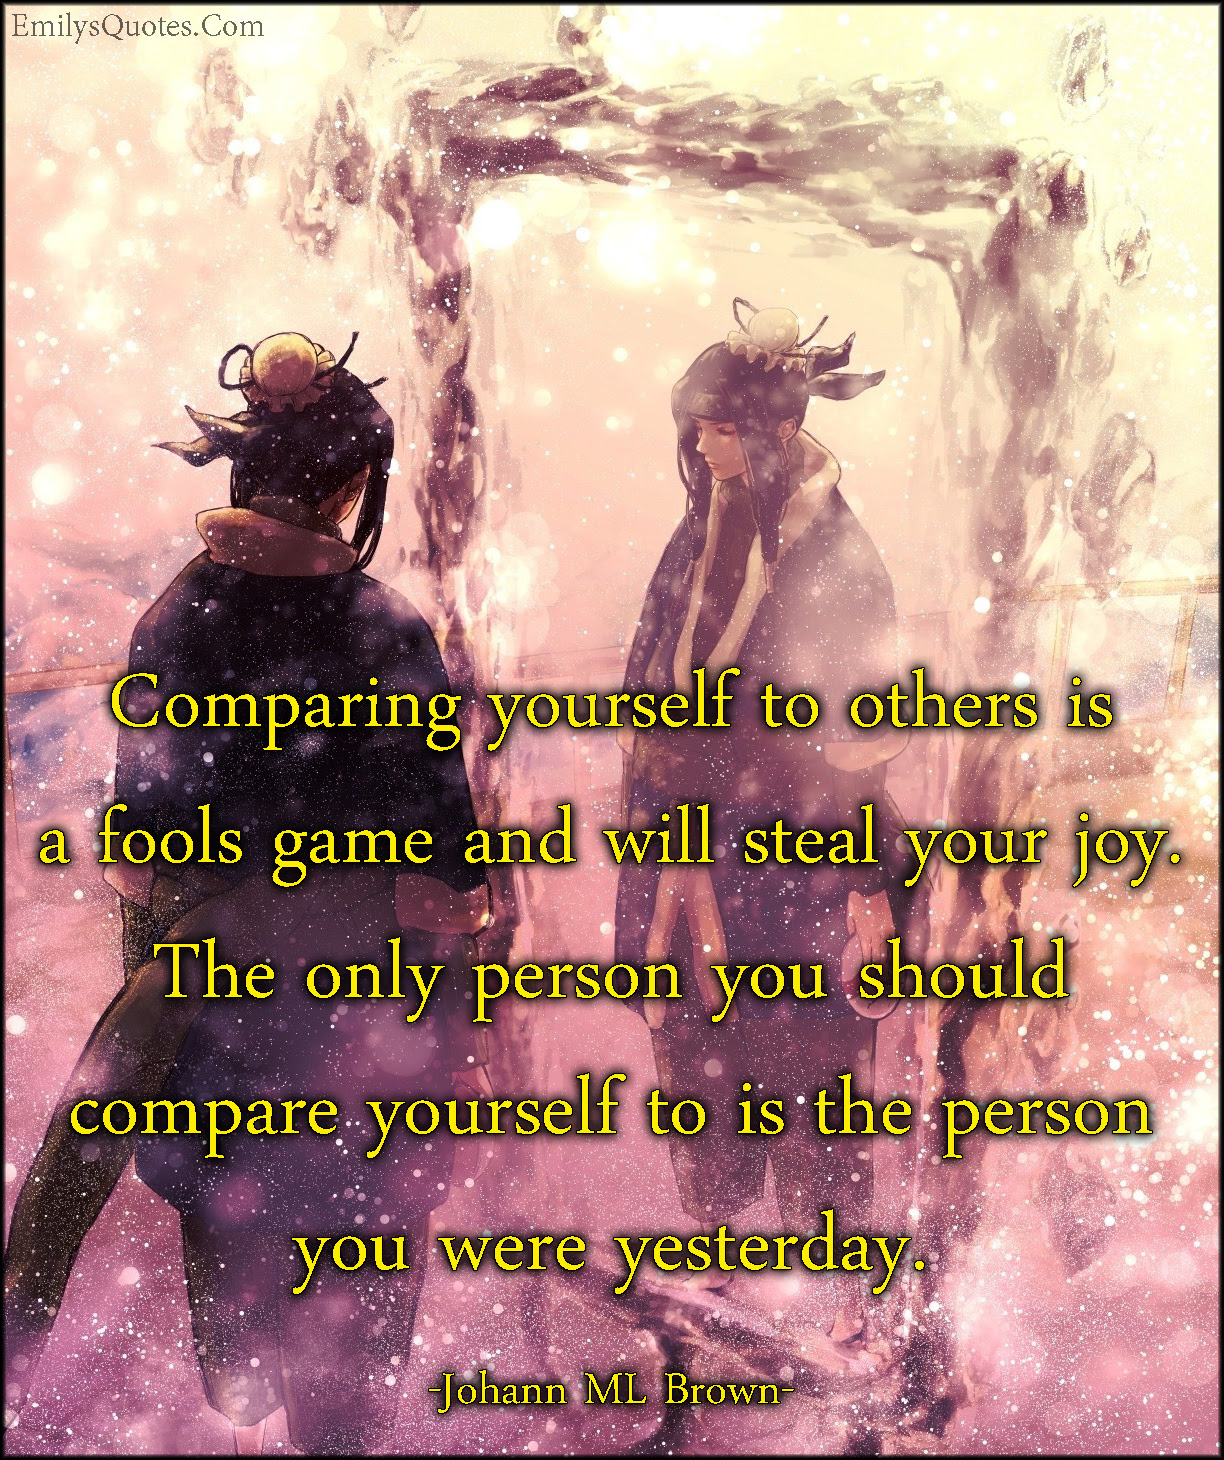 Comparing Yourself To Others Is A Fools Game And Will Steal Your Joy